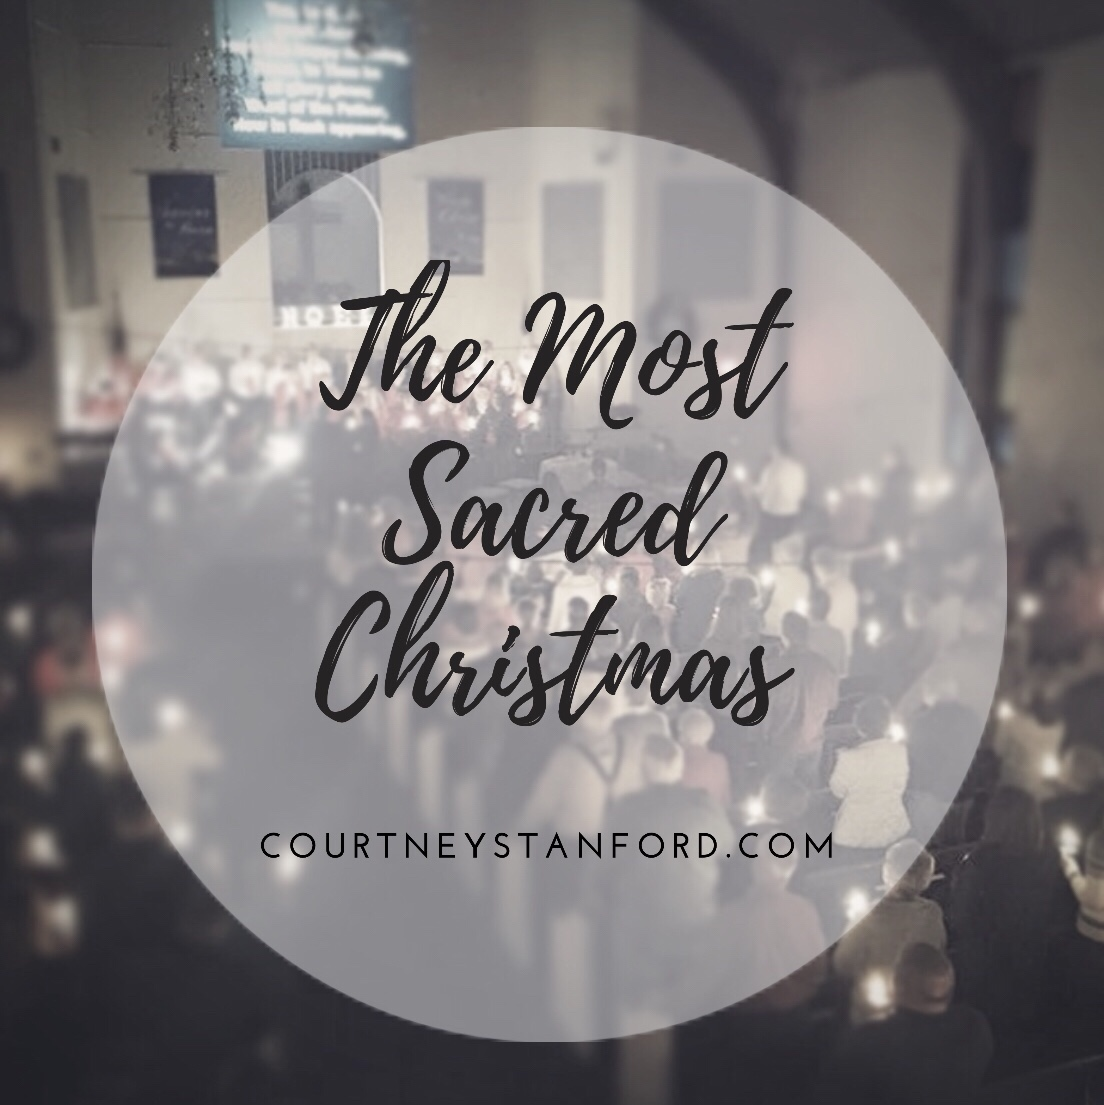 The Most Sacred Christmas series, by Courtney Stanford